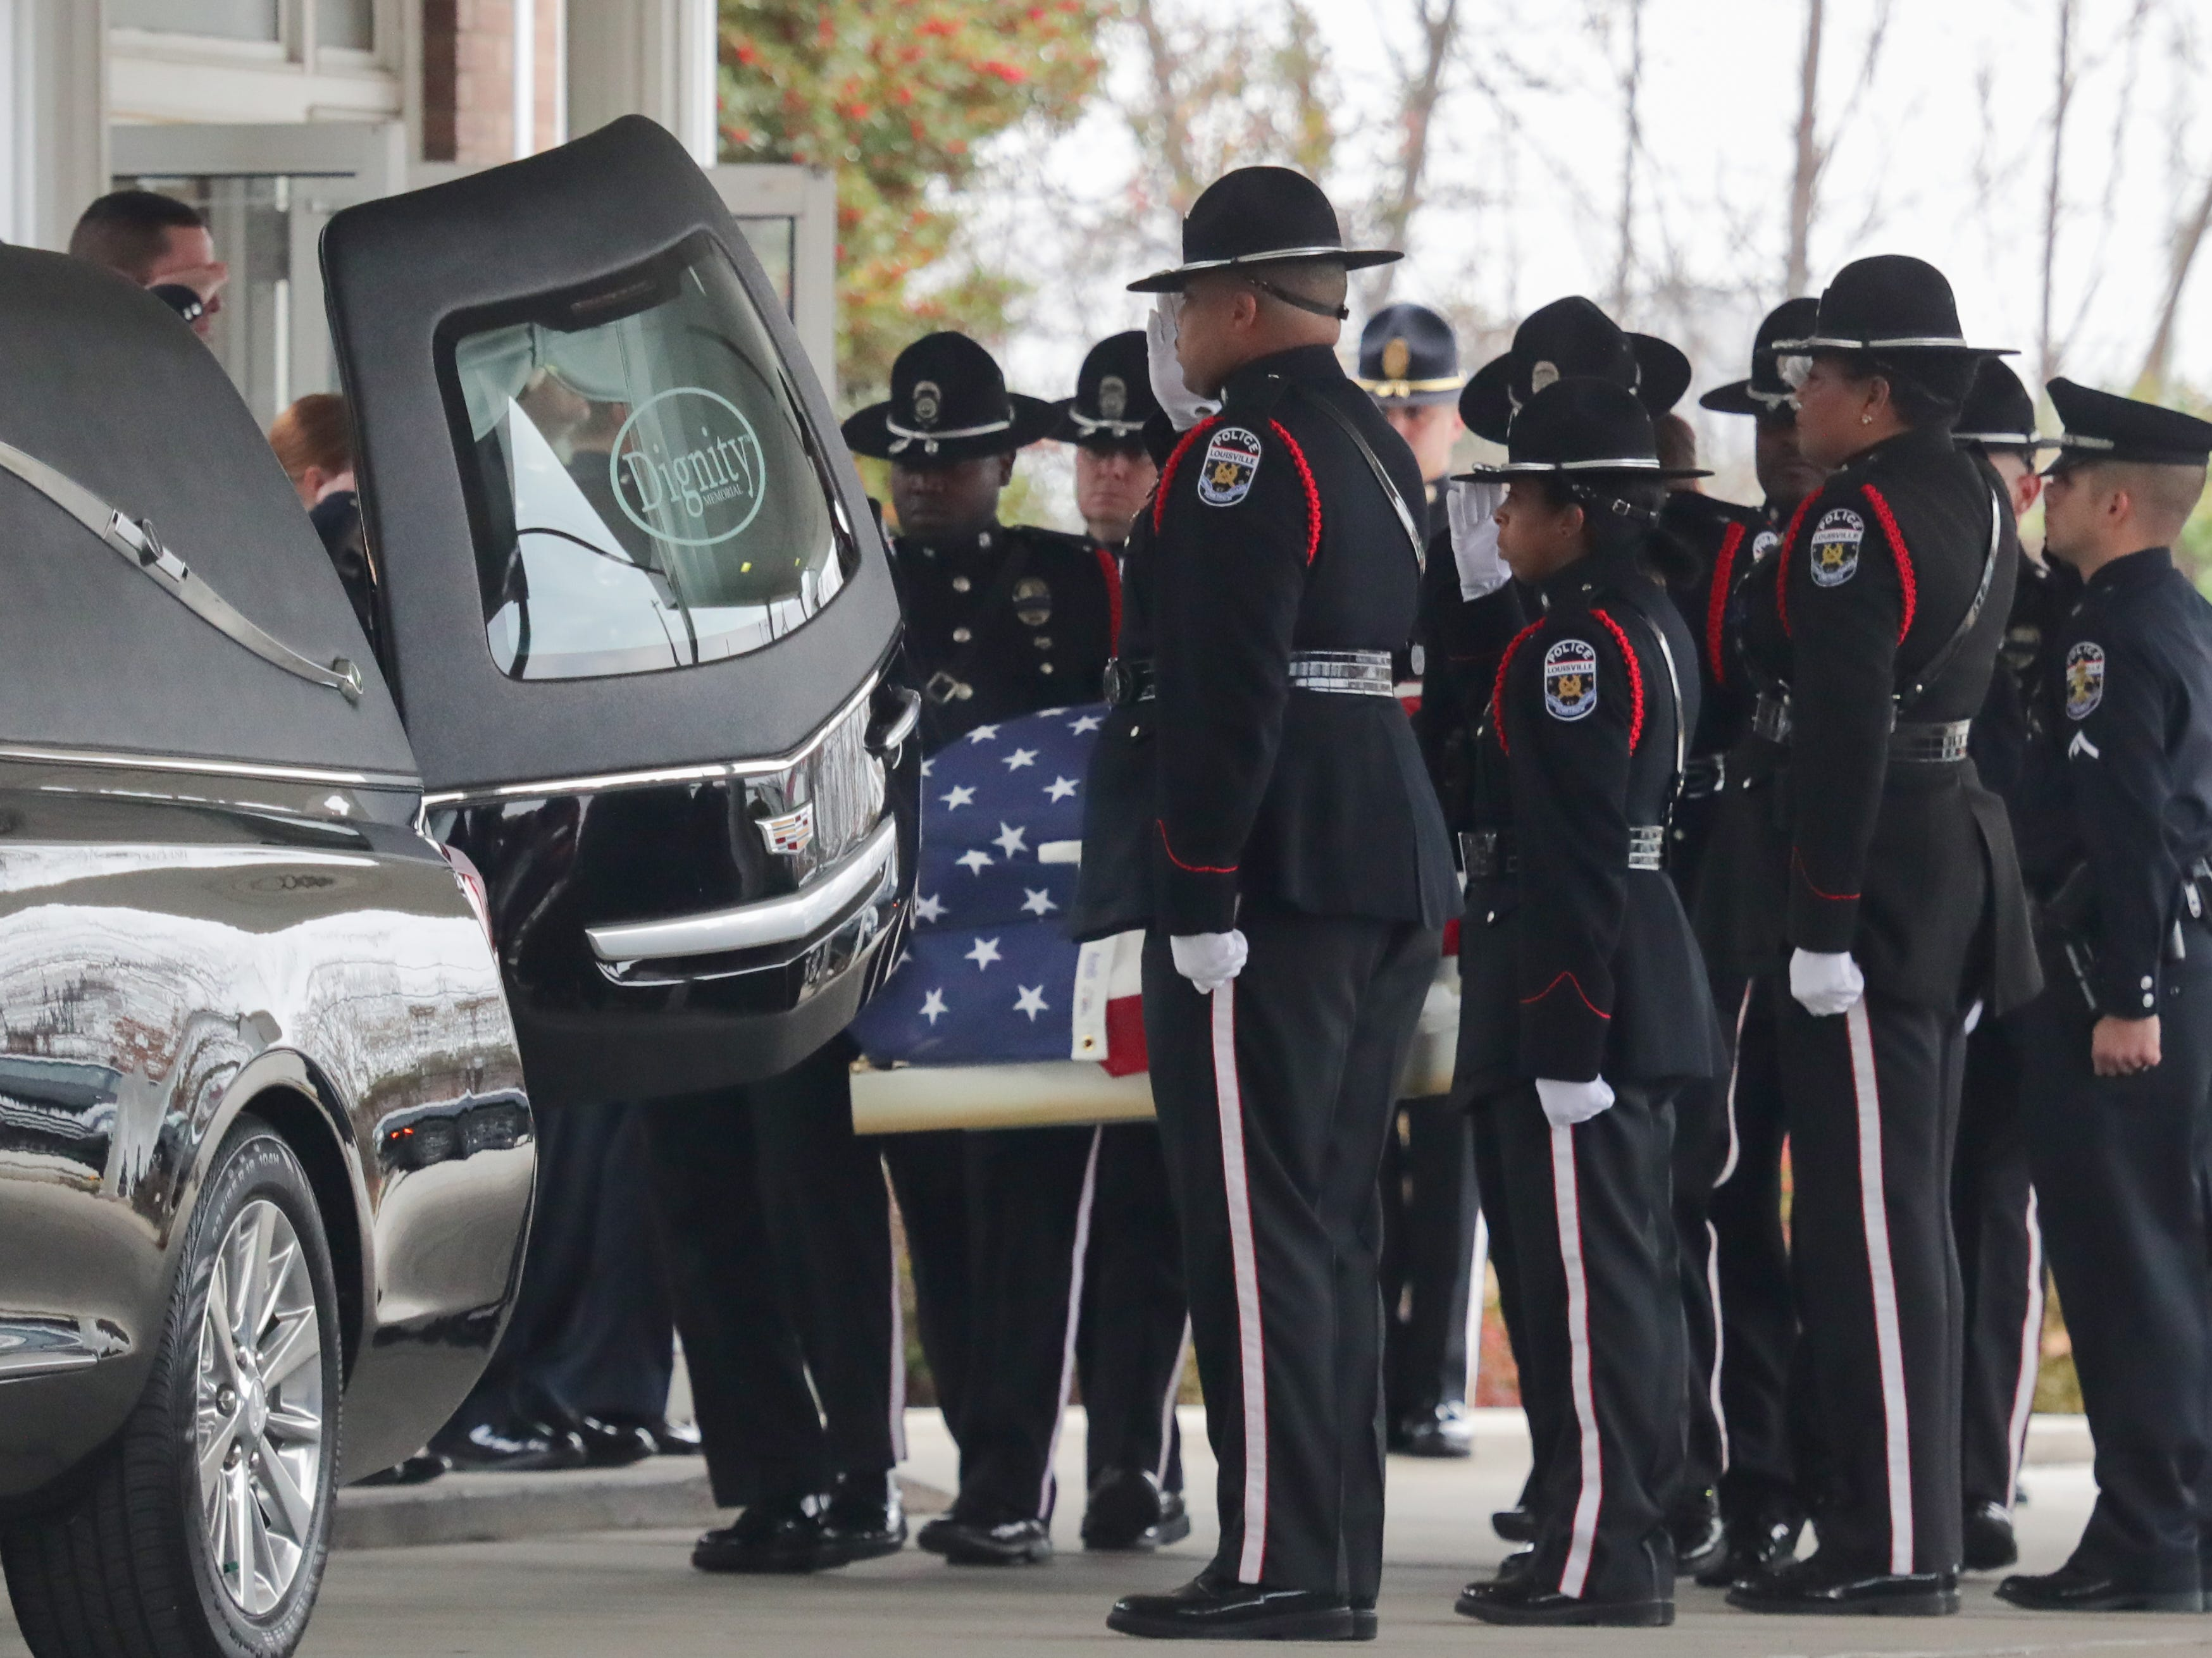 Louisville Metro Police carry the flag-trapped coffin of Detective Deidre Mengedoht to the hearse Saturday morning at O.D. White Funeral home on South Third Street before her last tour through the neighborhoods she patrolled as well as the Second District headquarters. Dec. 29, 2018